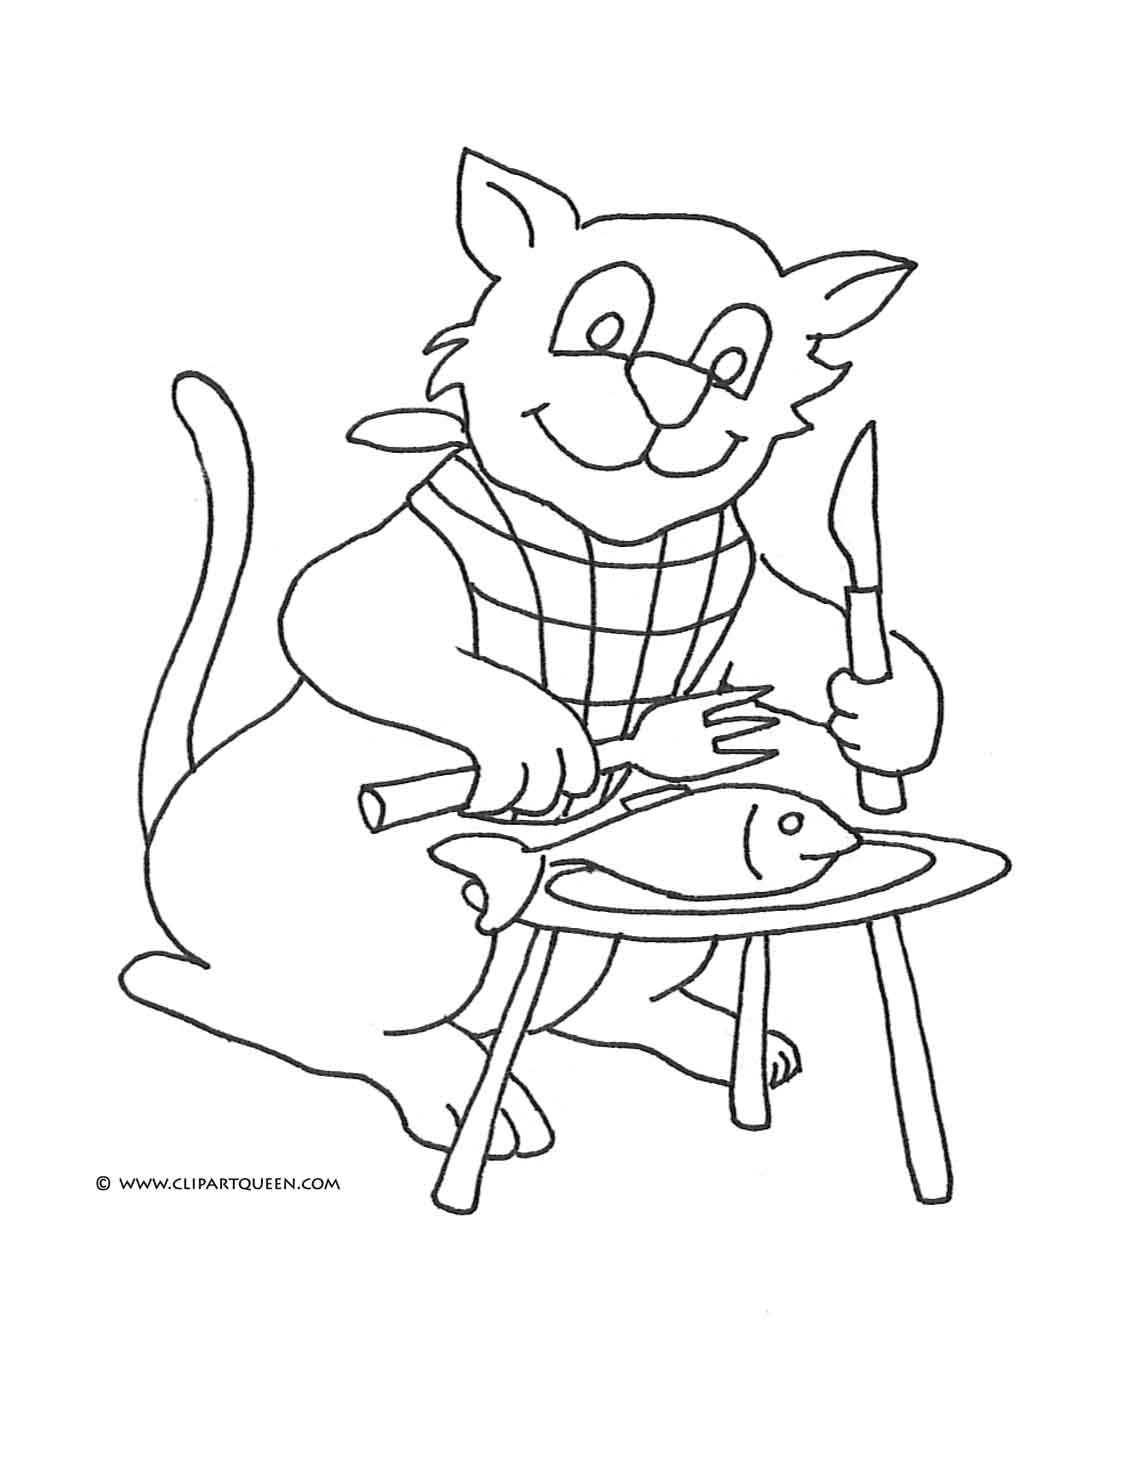 cat coloring page cat eating fish with fork